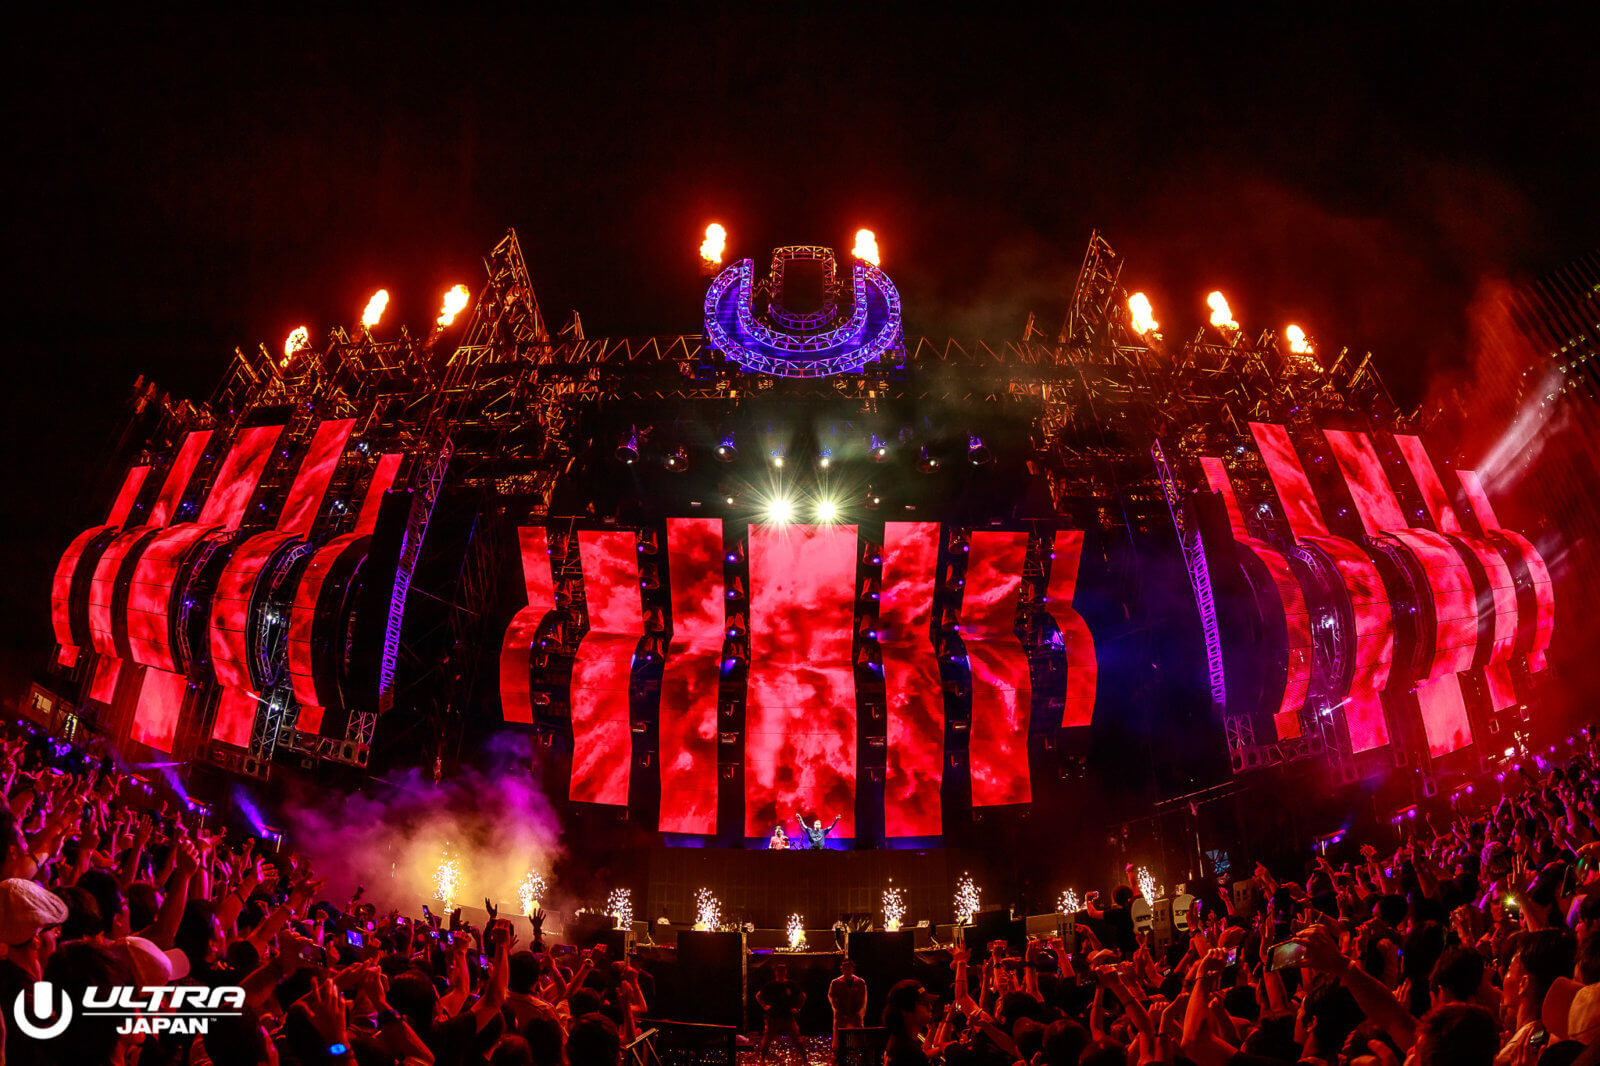 ultra japan image